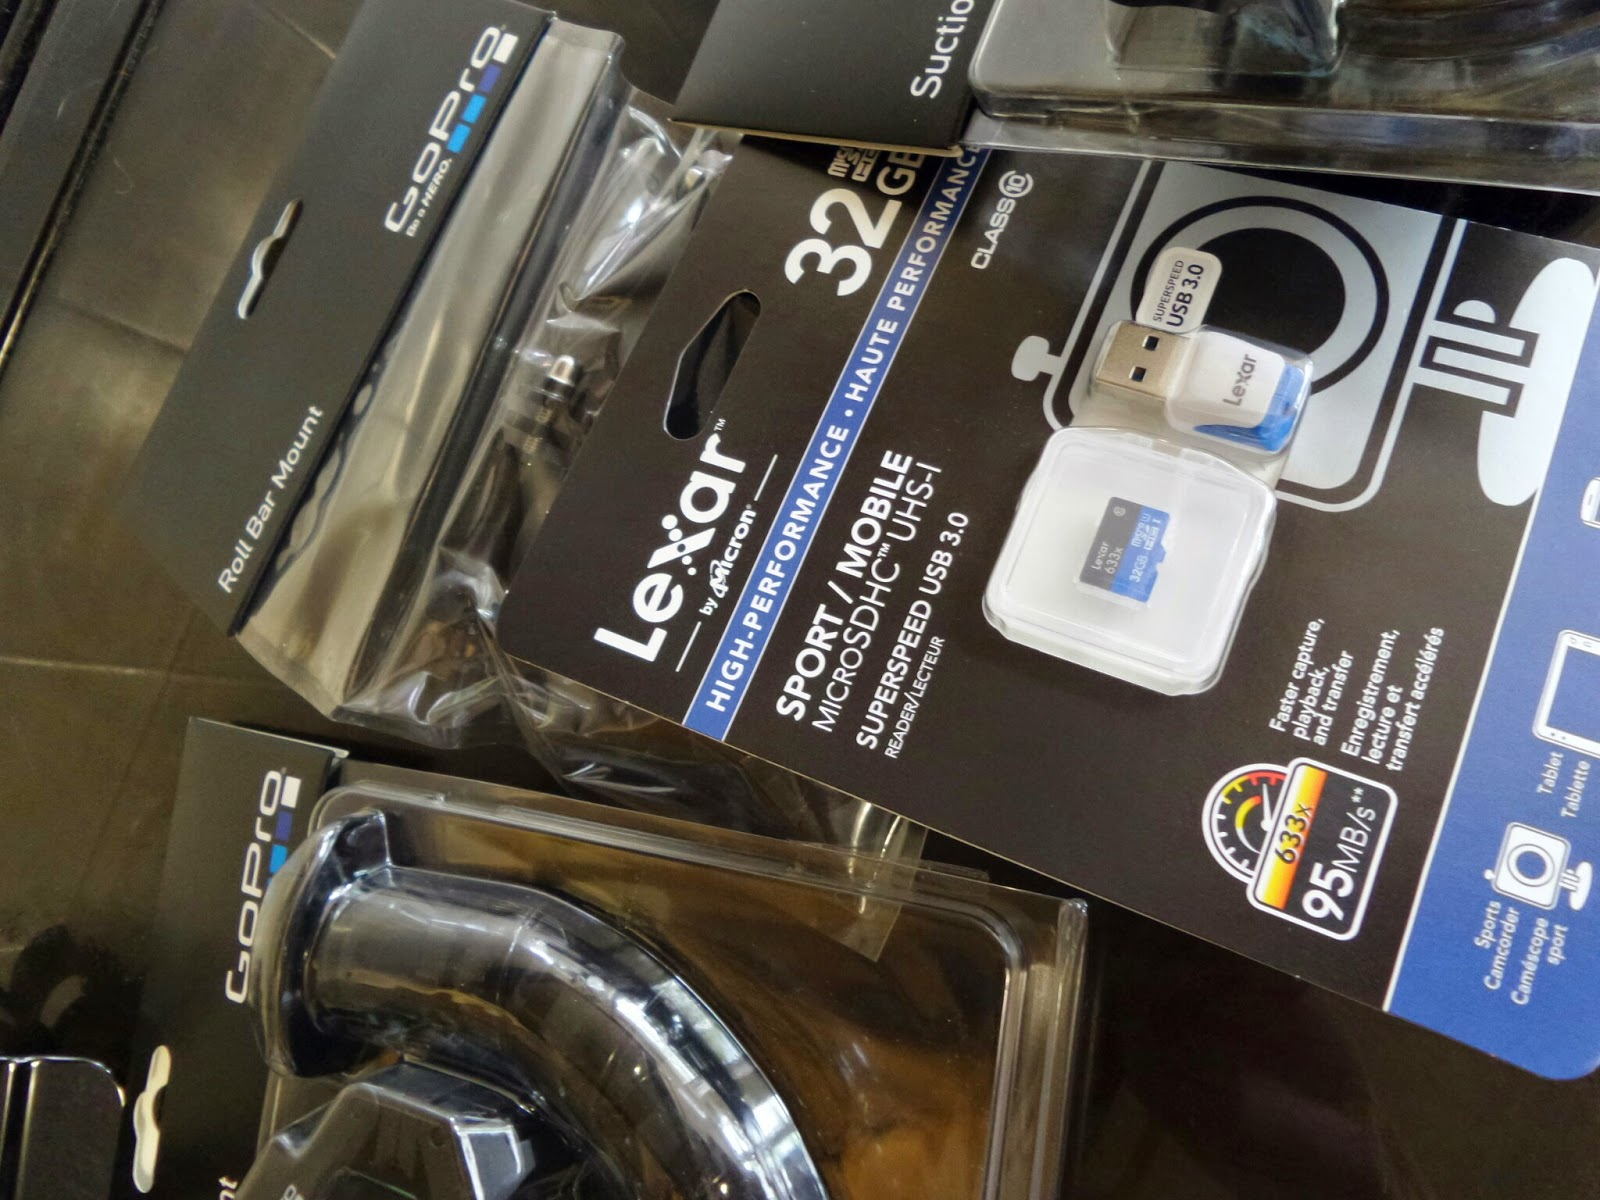 GoPro Accessories and camera